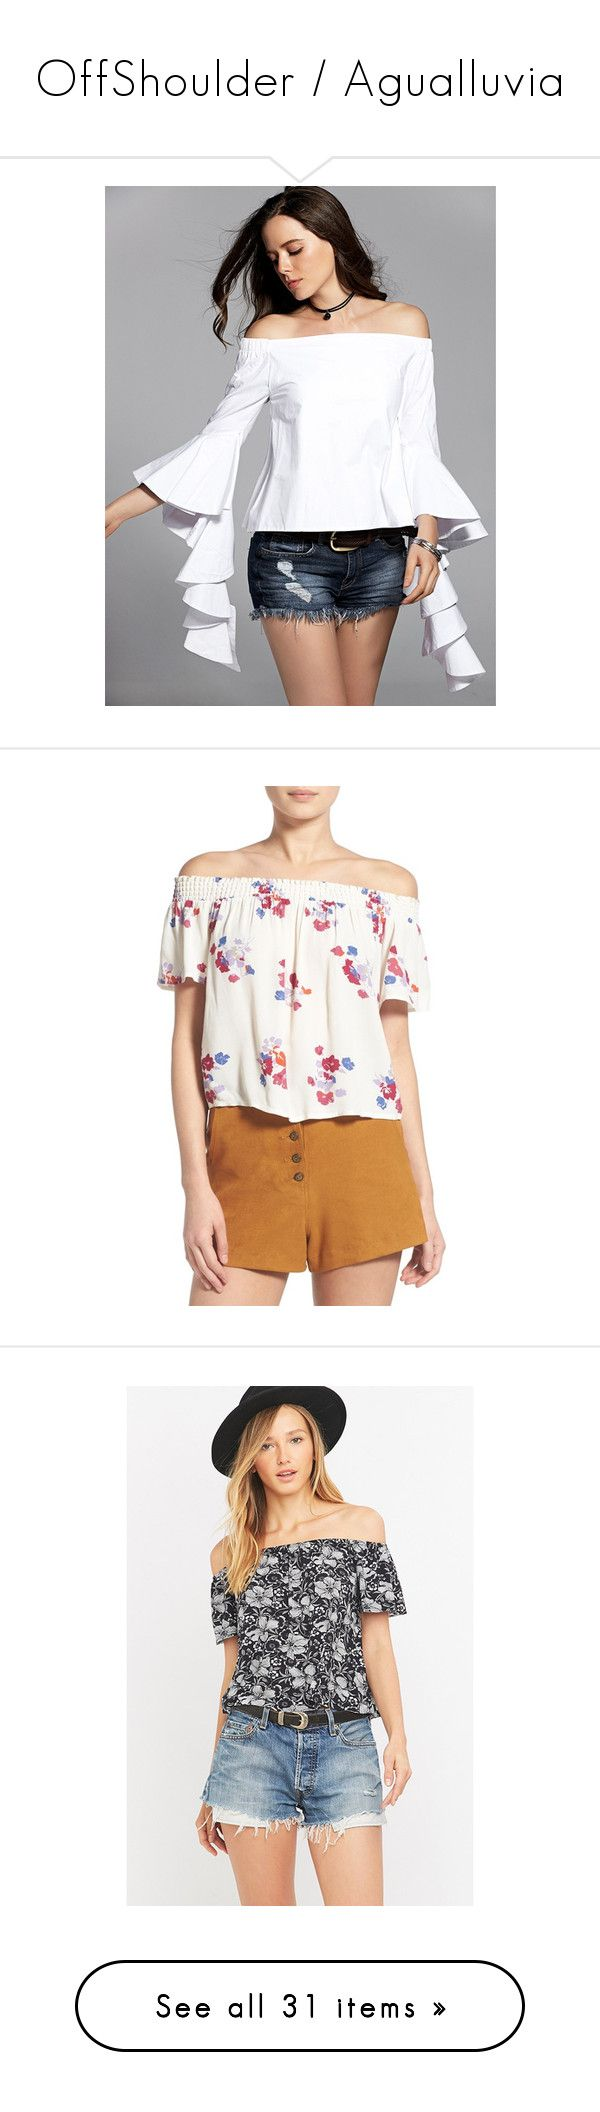 OffShoulder / Agualluvia by urvanity on Polyvore featuring polyvore, women's fashion, clothing, tops, blouses, white off shoulder blouse, off shoulder tops, ruffle blouse, off-the-shoulder ruffle tops, white blouses, multi, flower print tops, beach tops, smock top, floral off the shoulder top, white floral top, black and white floral top, black and white top, off the shoulder tops, short sleeve tops, short sleeve off the shoulder top, fashion tops, viscose tops, red top, faithfull, button…